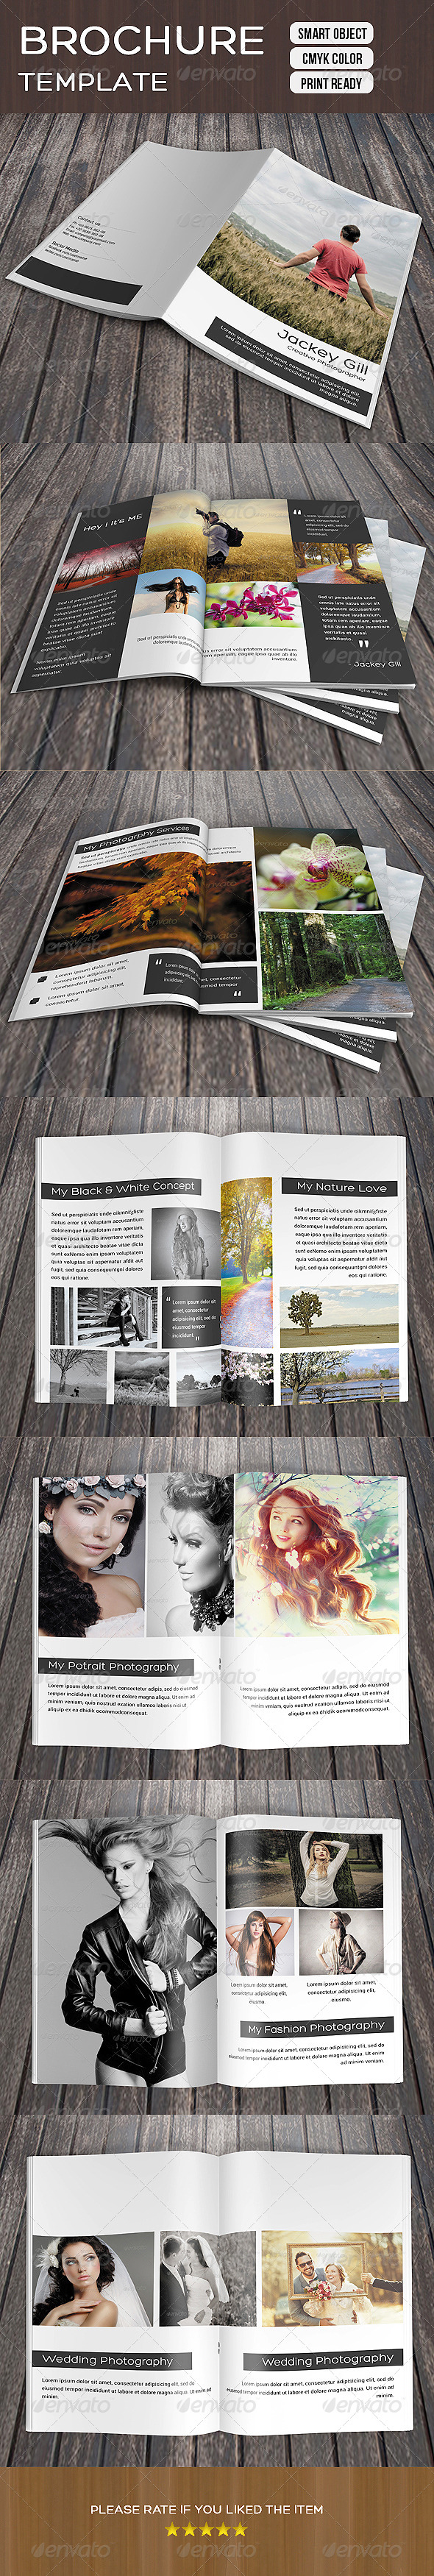 GraphicRiver Photography Portfolio Brochure 8521977